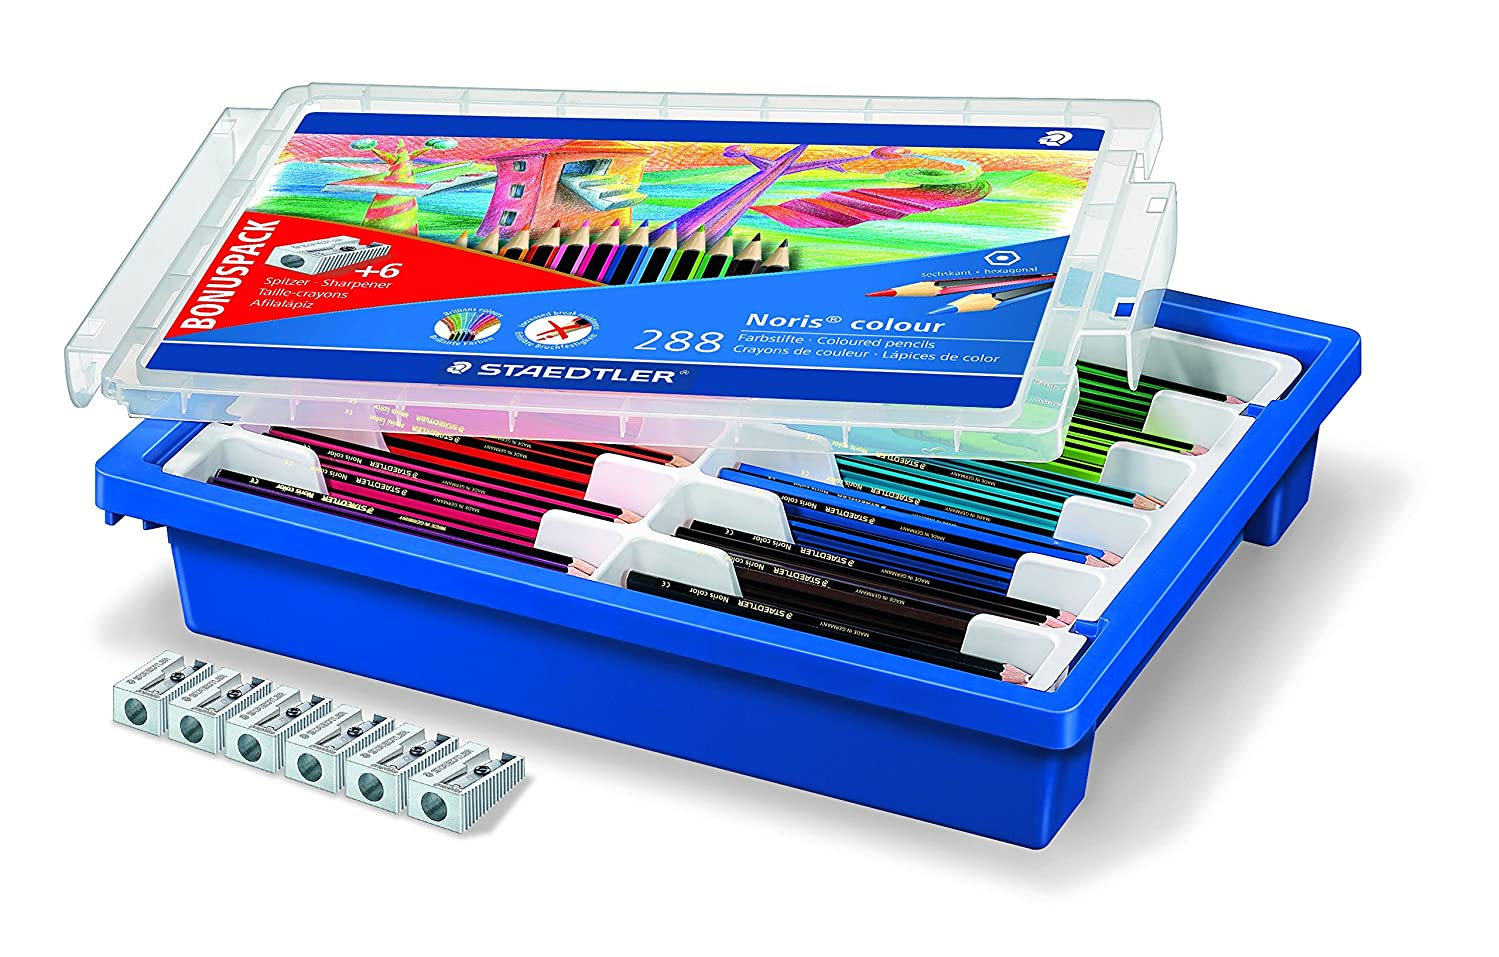 185 Staedtler Noris colour Pencil Sharpener with Assorted Pack of 6-288